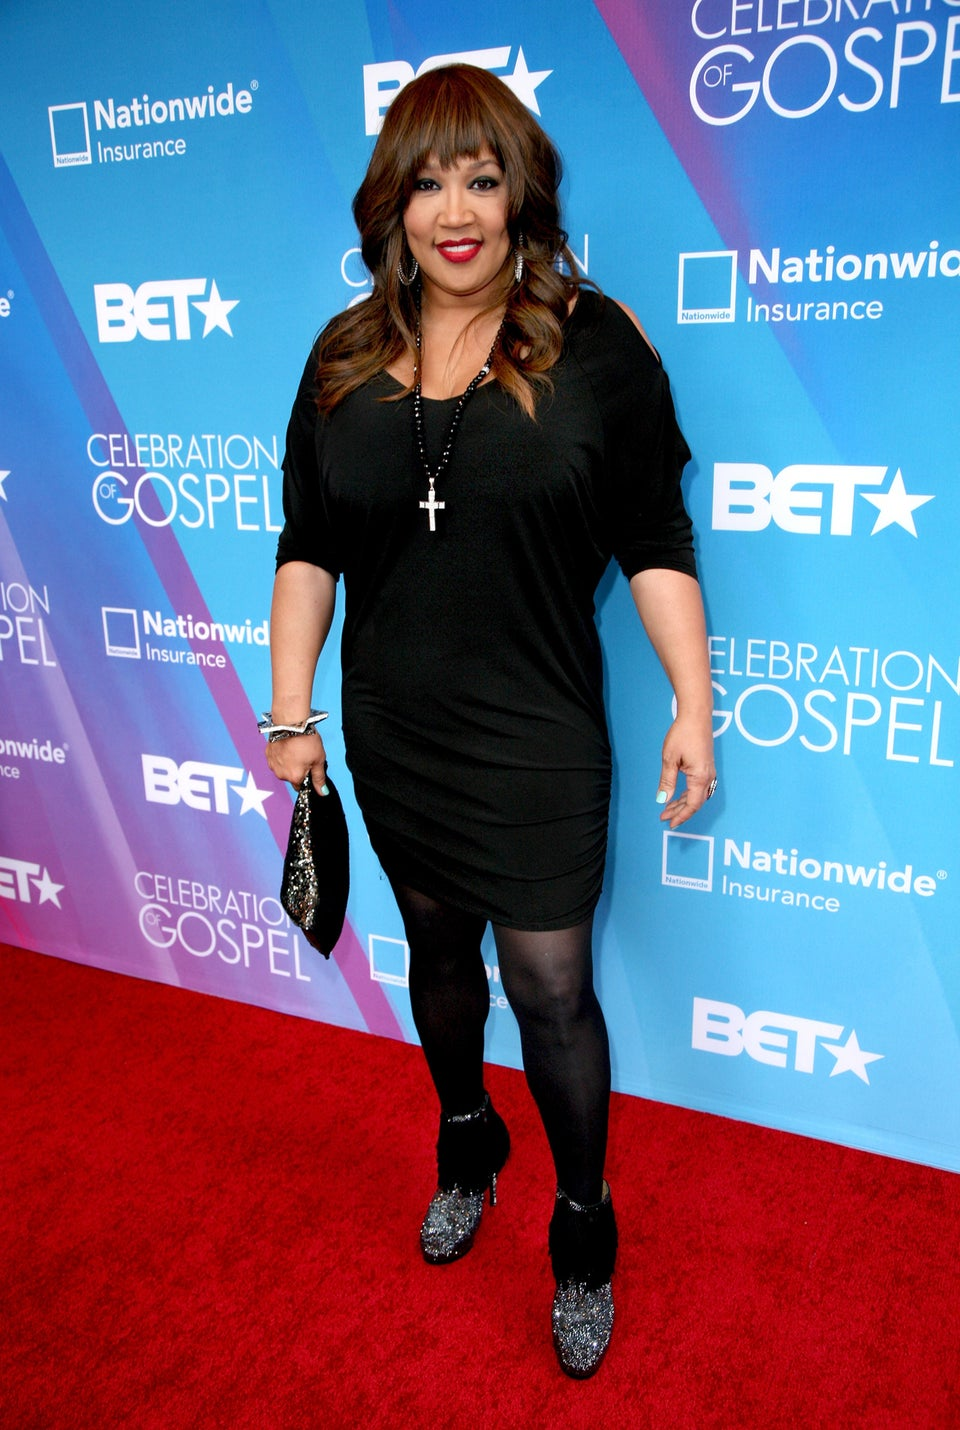 EXCLUSIVE: Kym Whitley Talks Adoption and 'Raising Whitley'